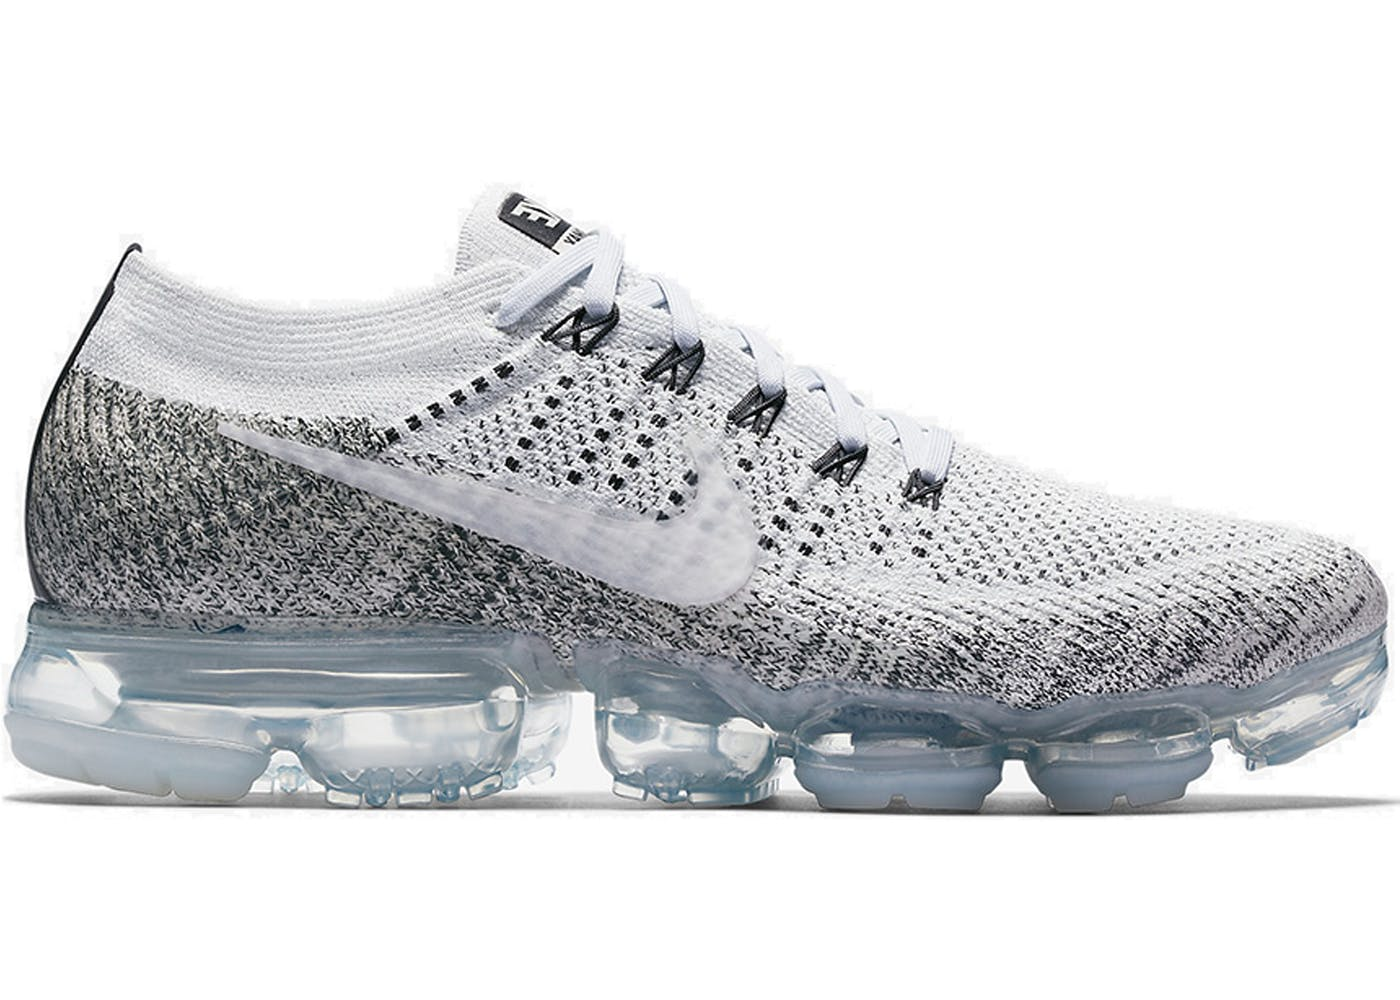 Cheap Nike Air VaporMax Flyknit AMD iD Running Shoe. Cheap Nike LU